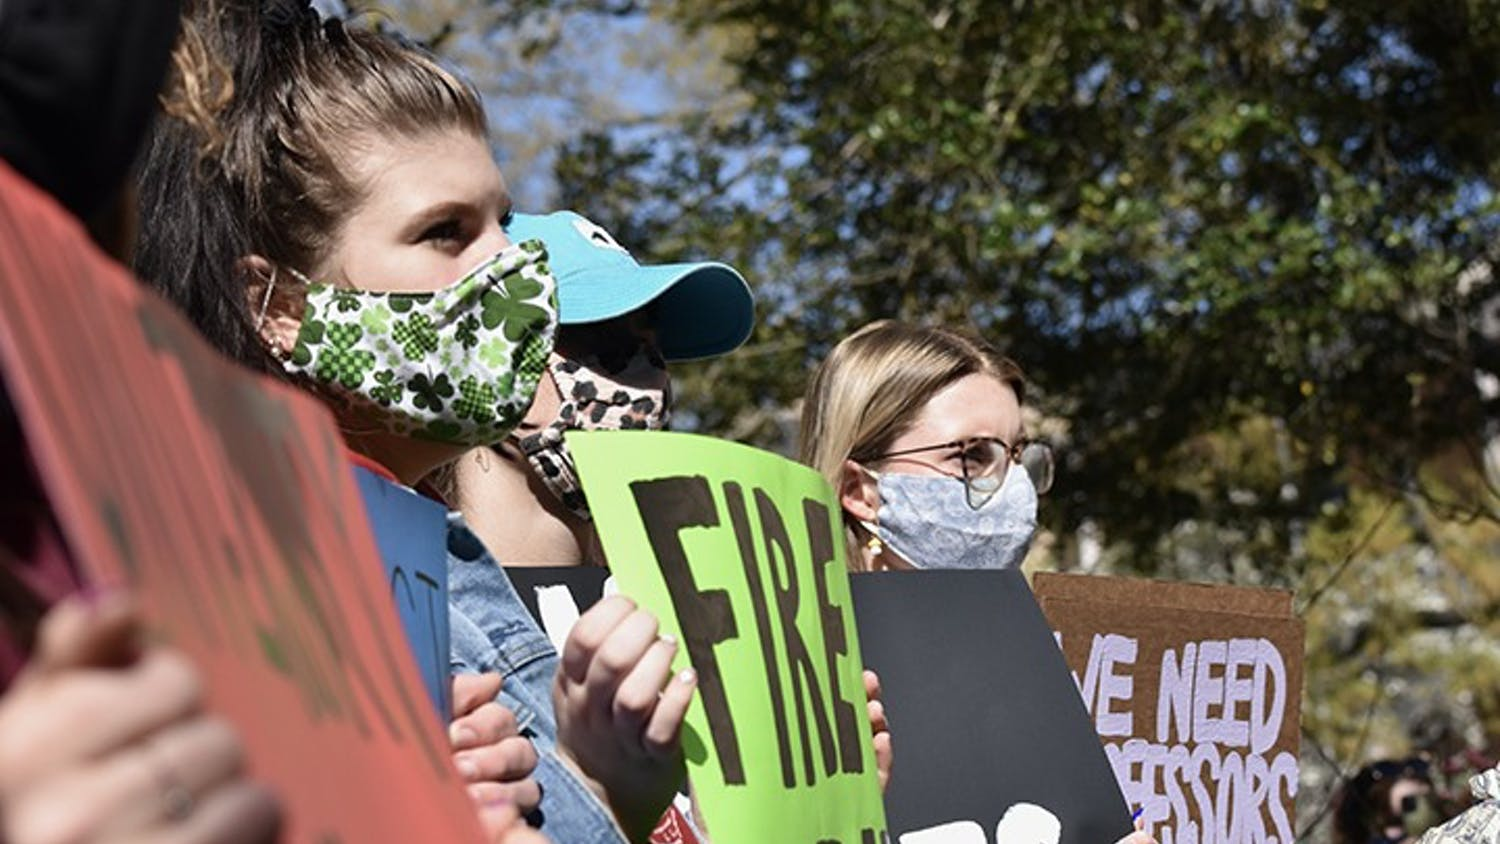 Student protestors hold signs directed towards administrators in the Osborne Administrative Building from the courtyard.